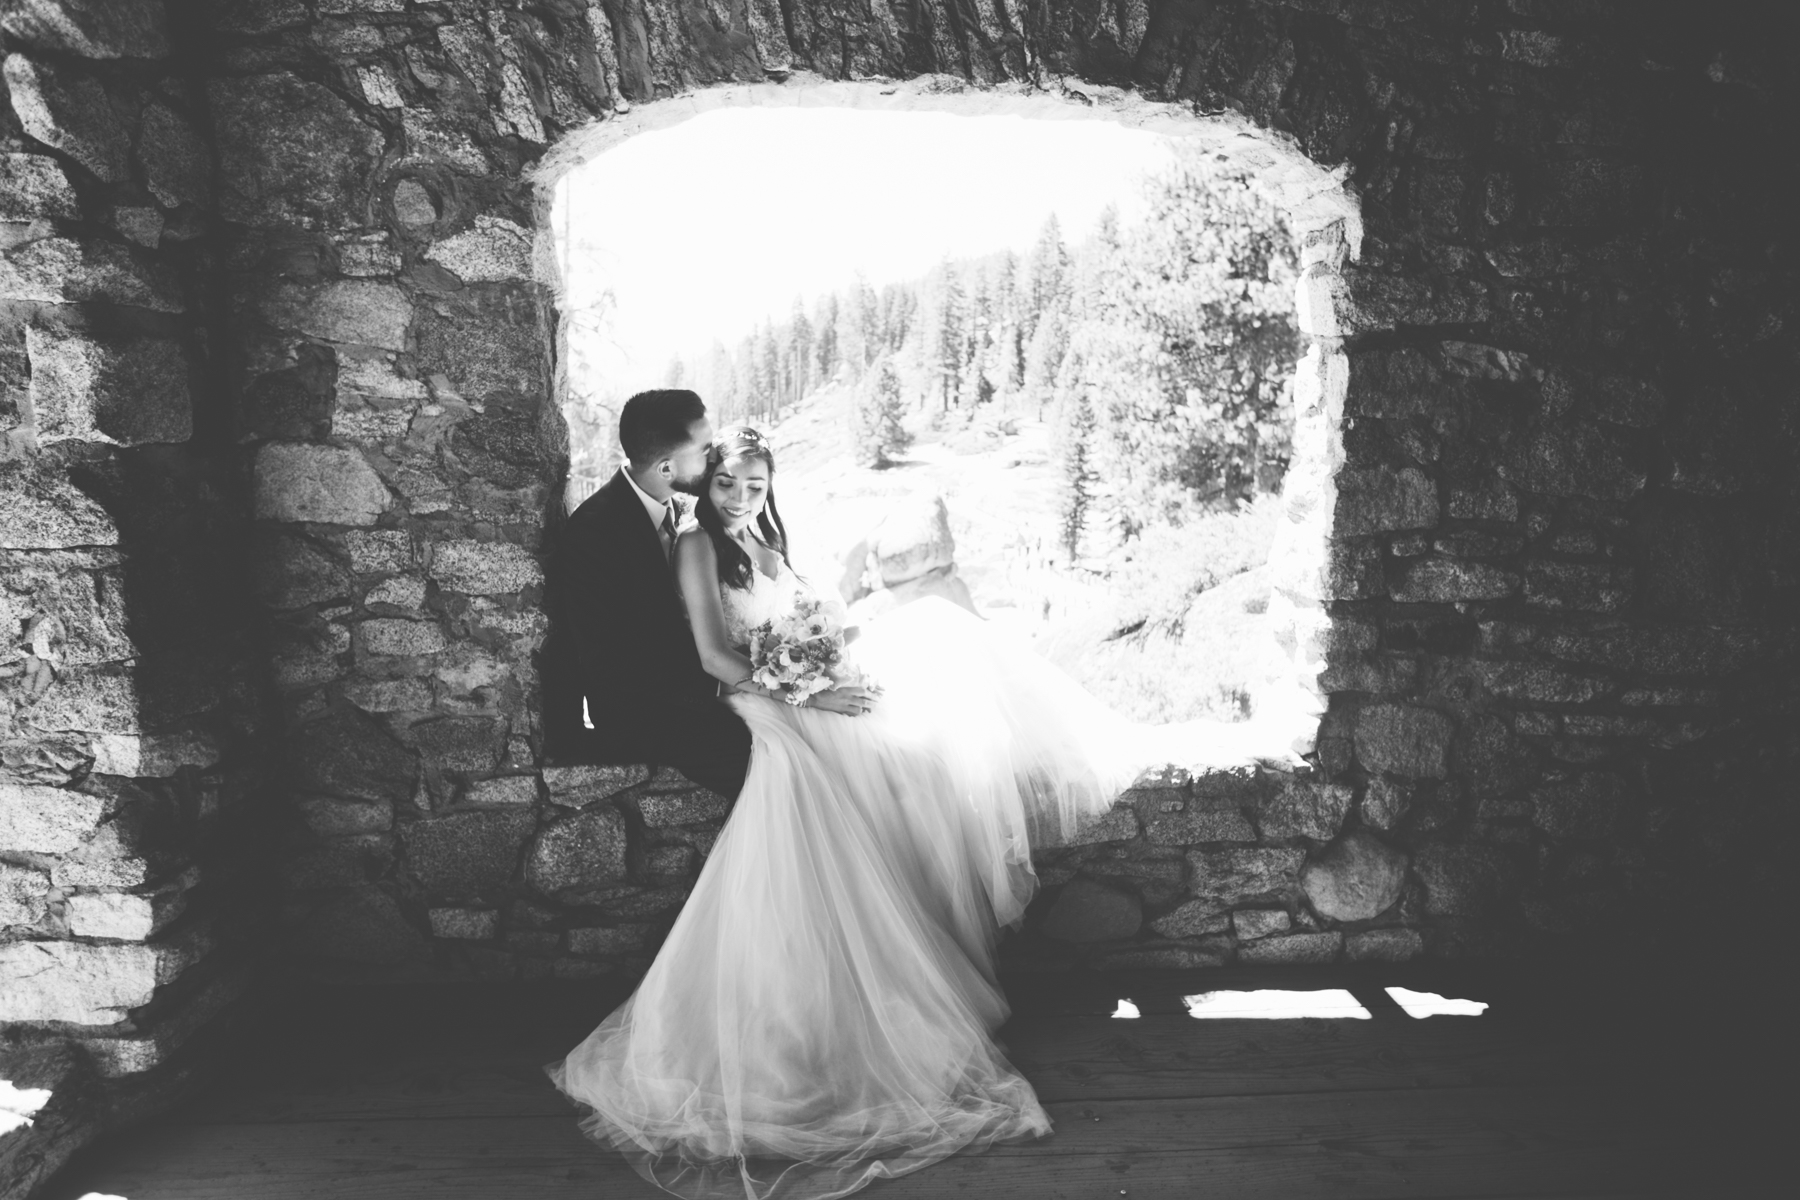 YosemiteWedding-6247.jpg